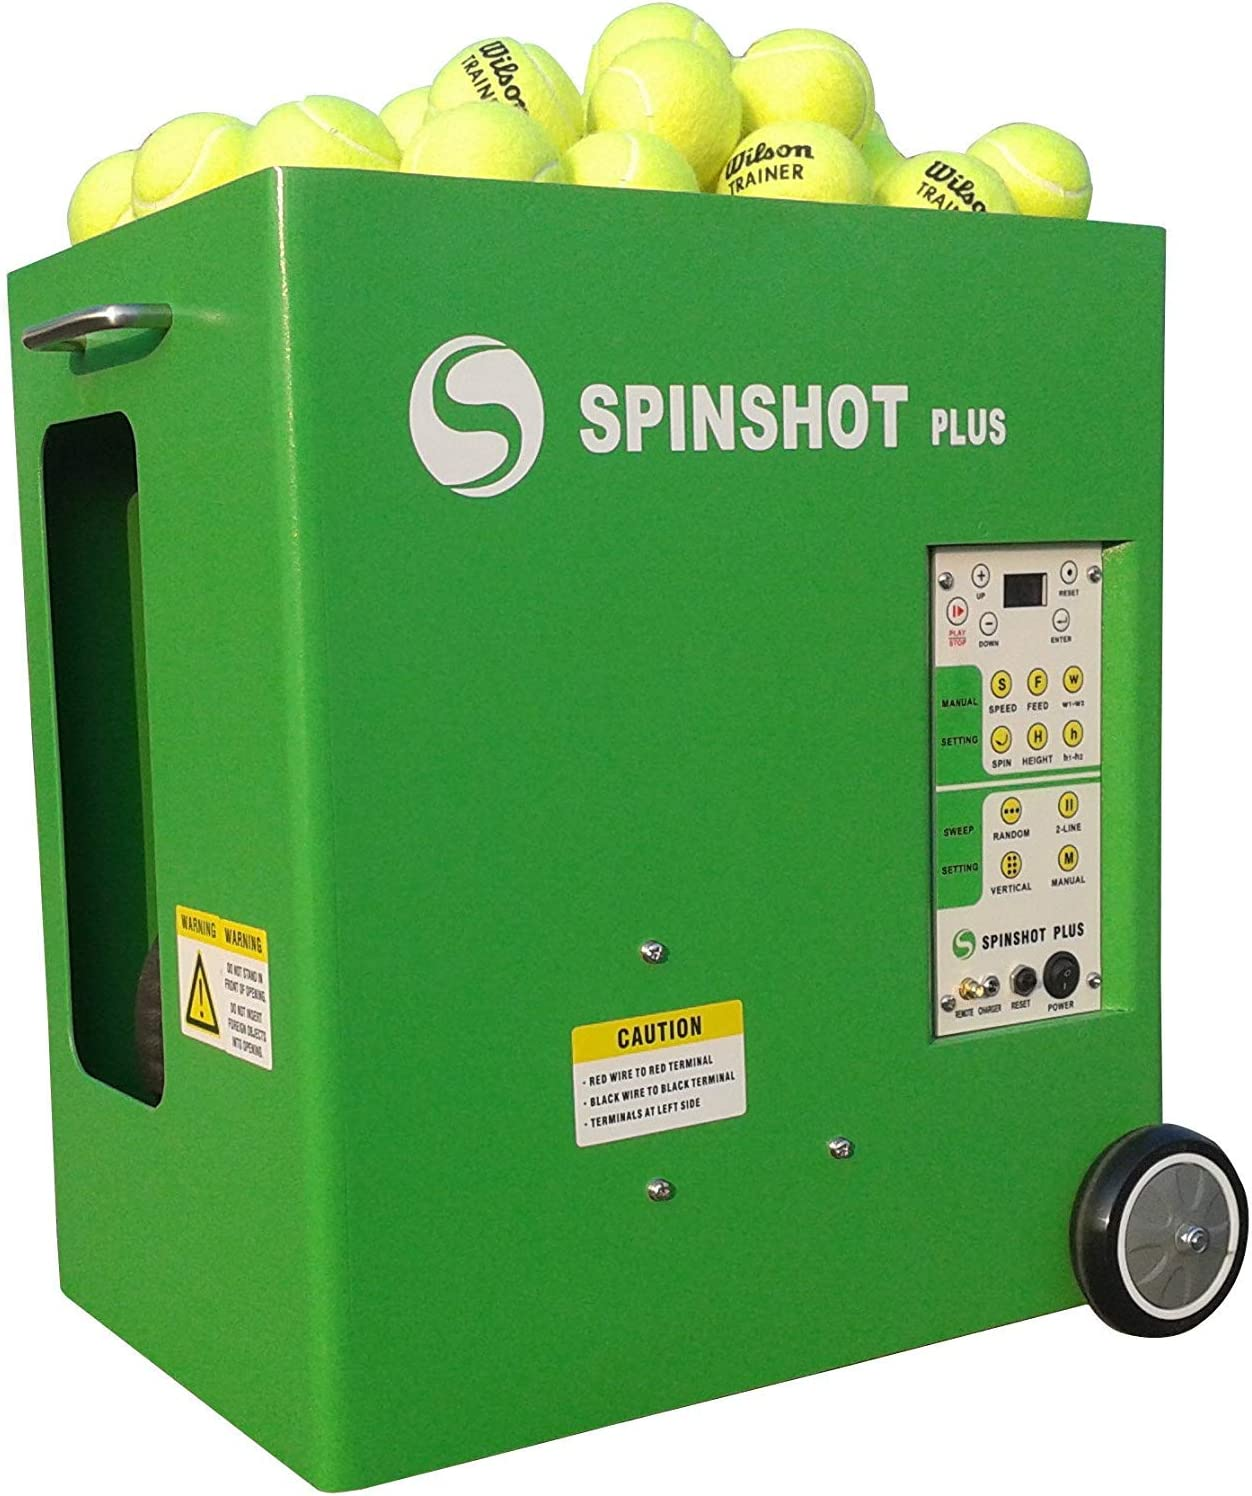 Spinshot Plus Tennis Ball Machine (Best Model for an Intermediate Player) : Sports & Outdoors